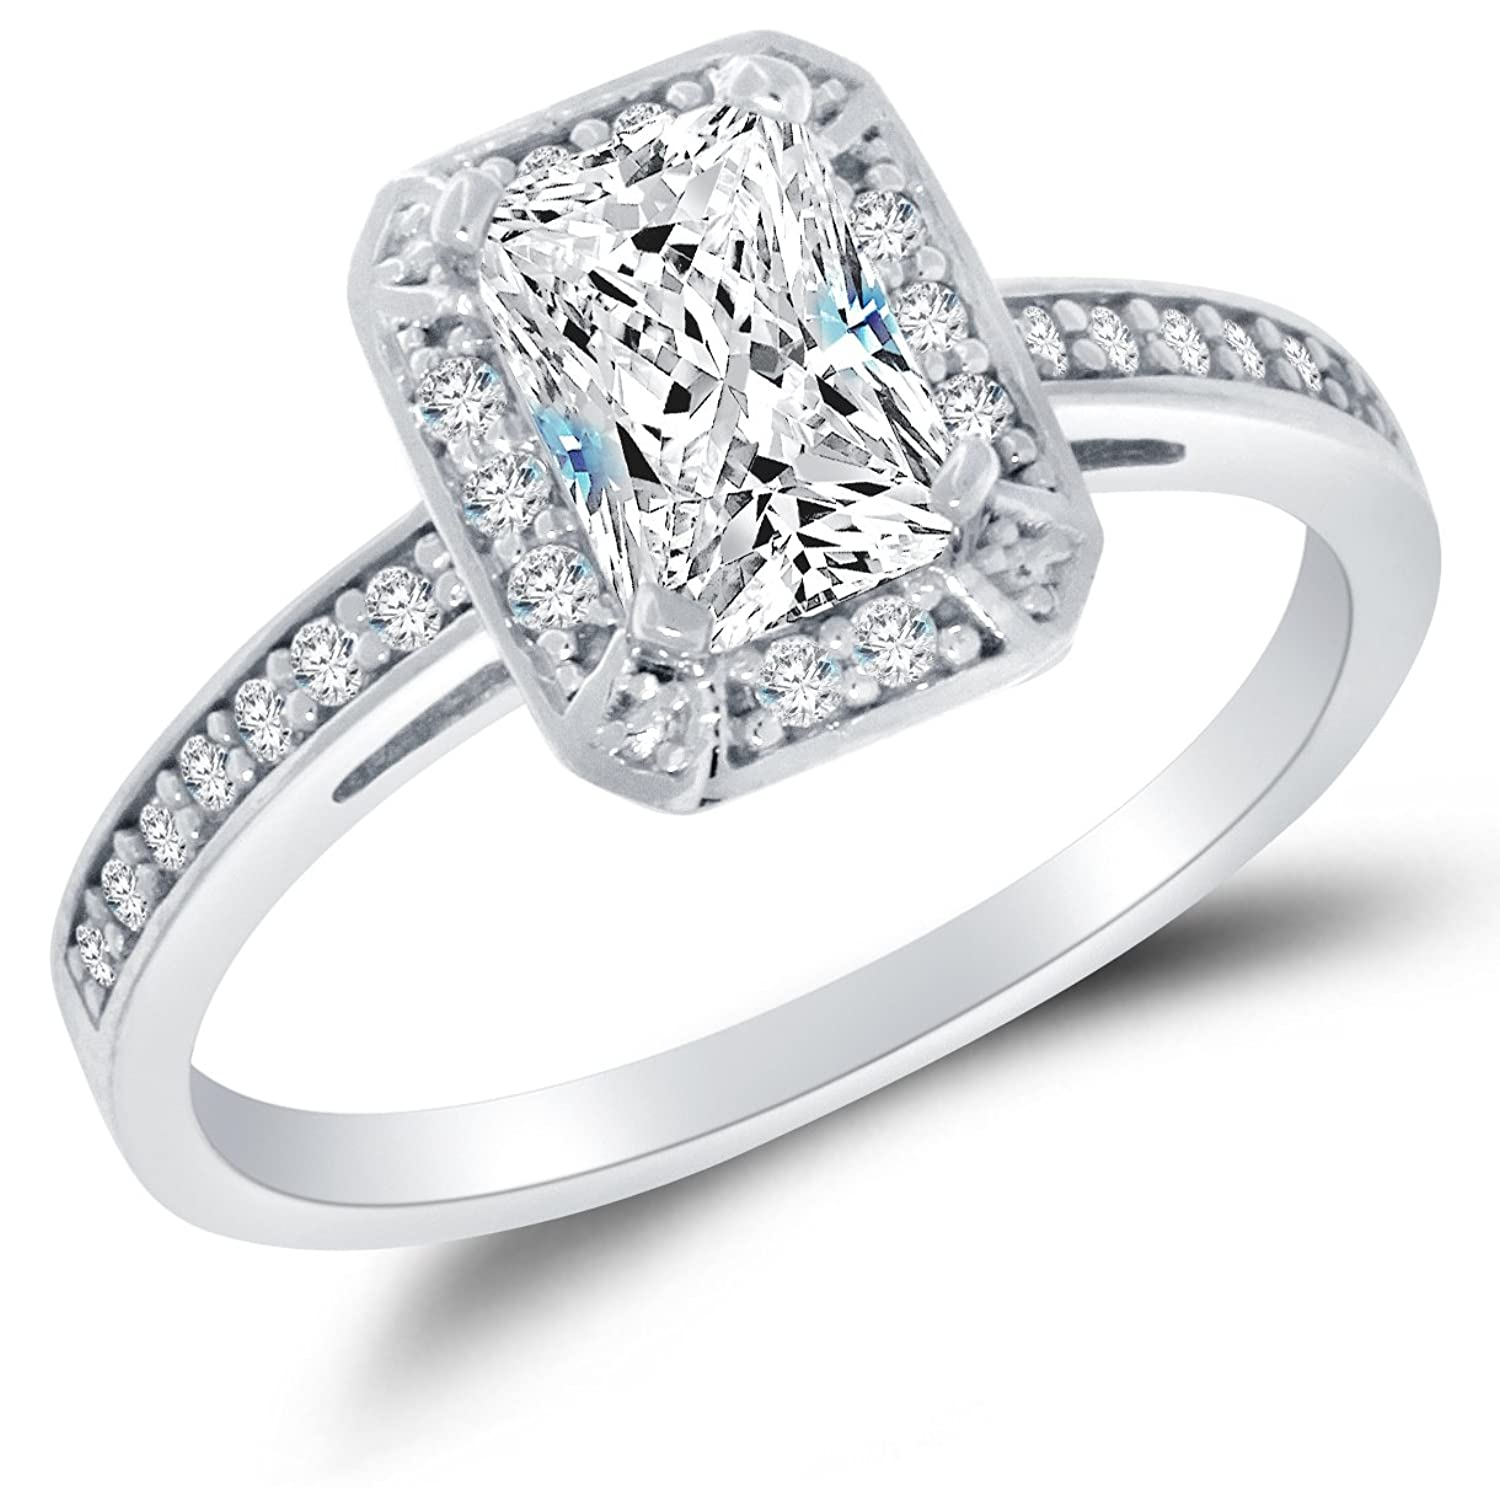 diamond clarity quality values dmannclarityvalues david jewelers highest mann diamonds about